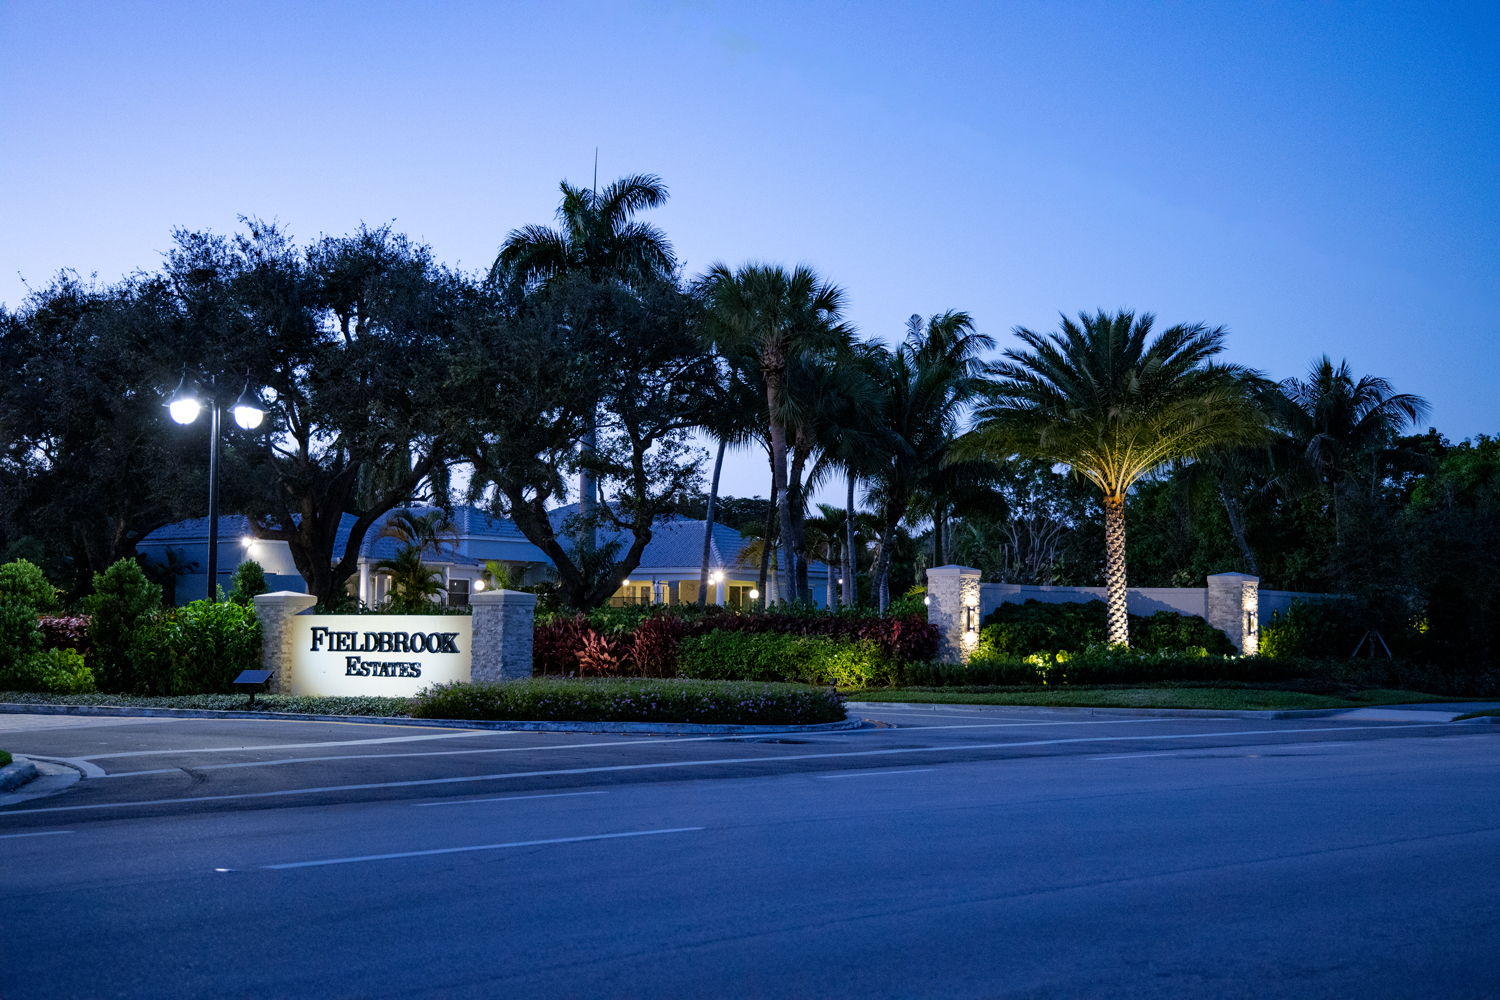 Fieldbrook Estates | Boca Raton, FL